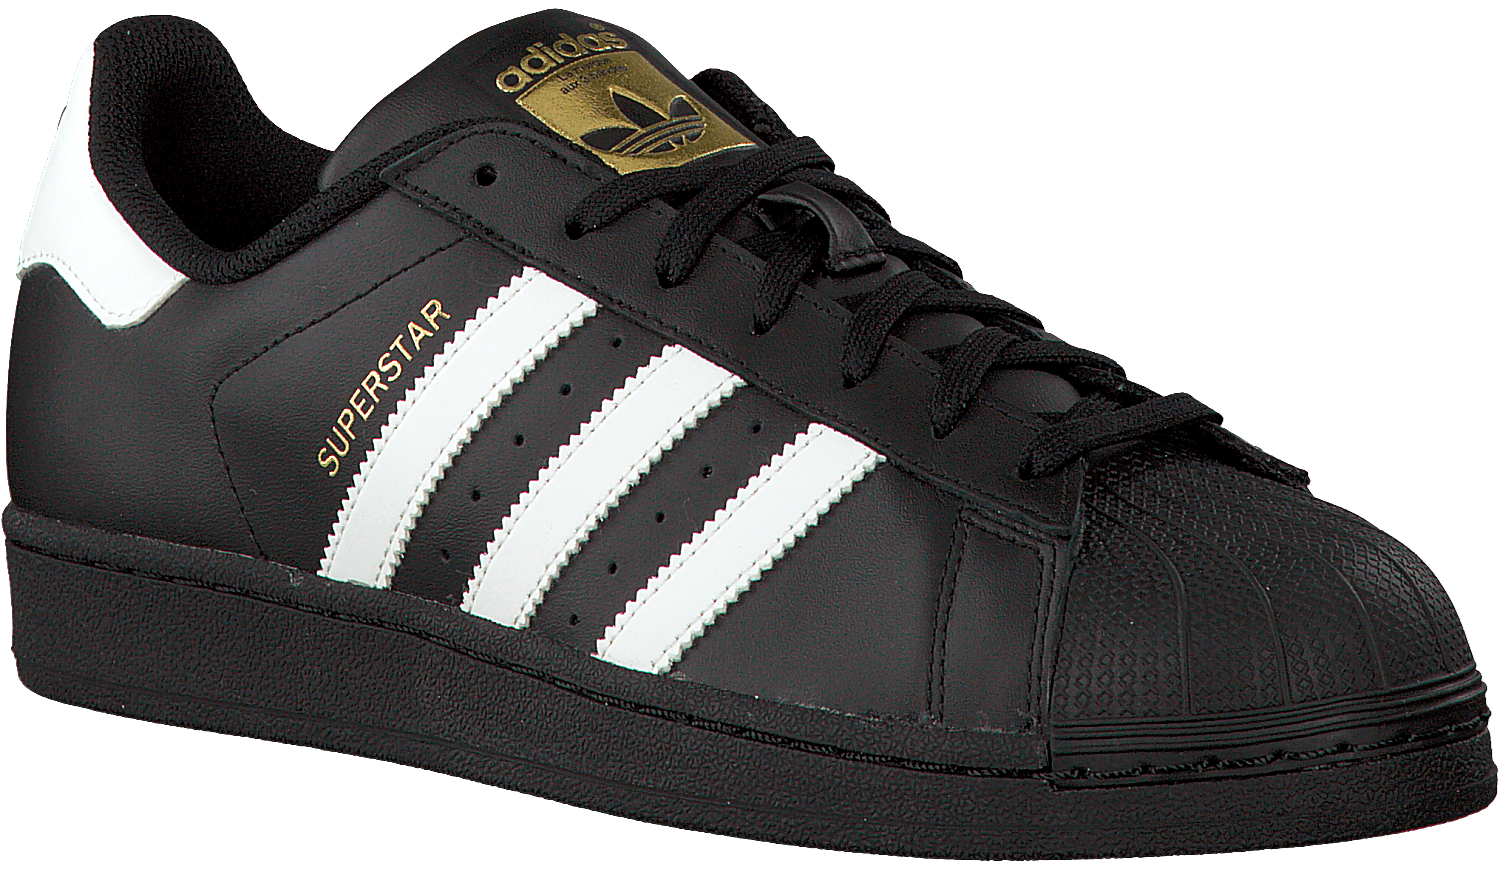 Zwarte Sneakers Heren Zwarte Adidas Sneakers Superstar Heren Omoda Be